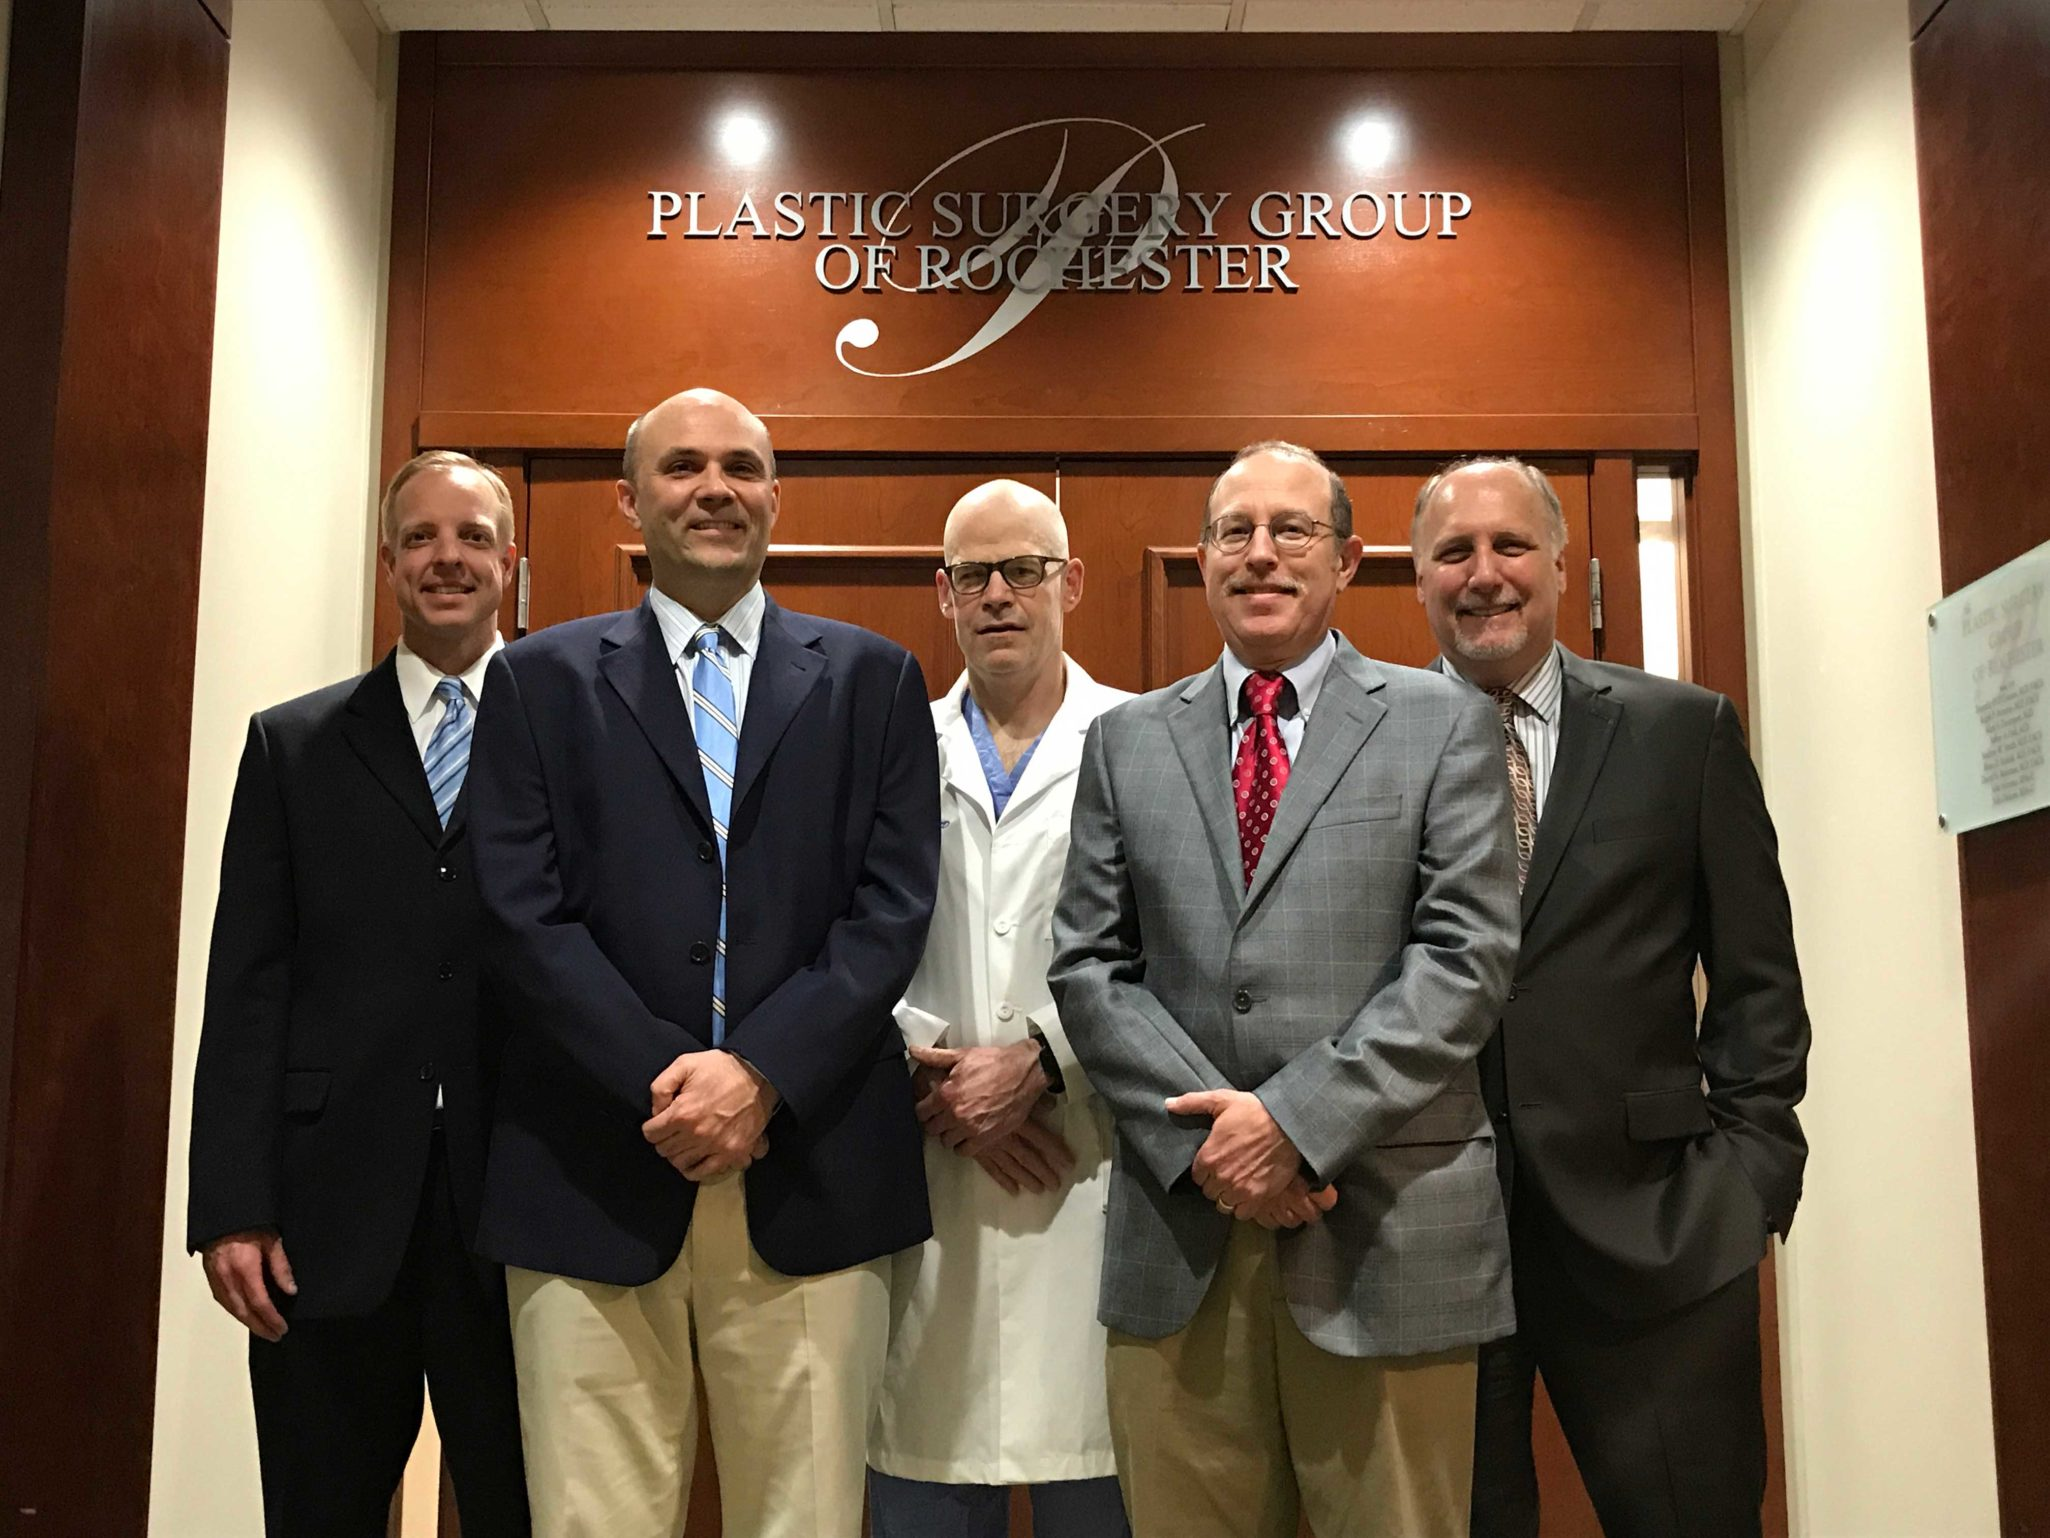 The-Plastic-Surgery-Group-of-Rochester